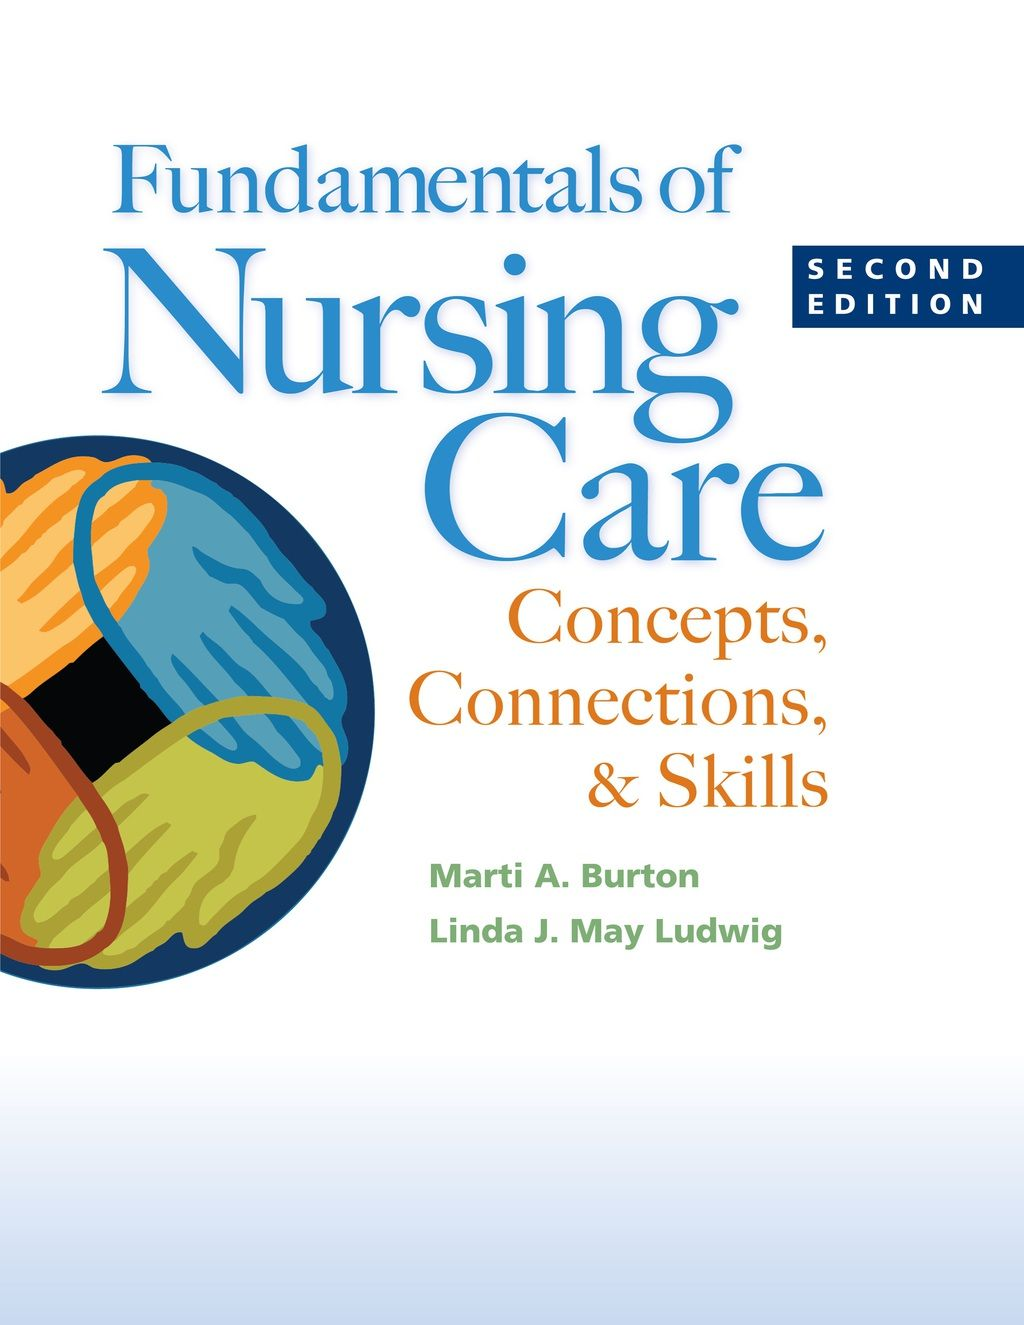 Fundamentals of Nursing Care: Concepts  Connections and Skills (eBook Rental) 6c87ecc4b800a026b168e7b1bbd684b6